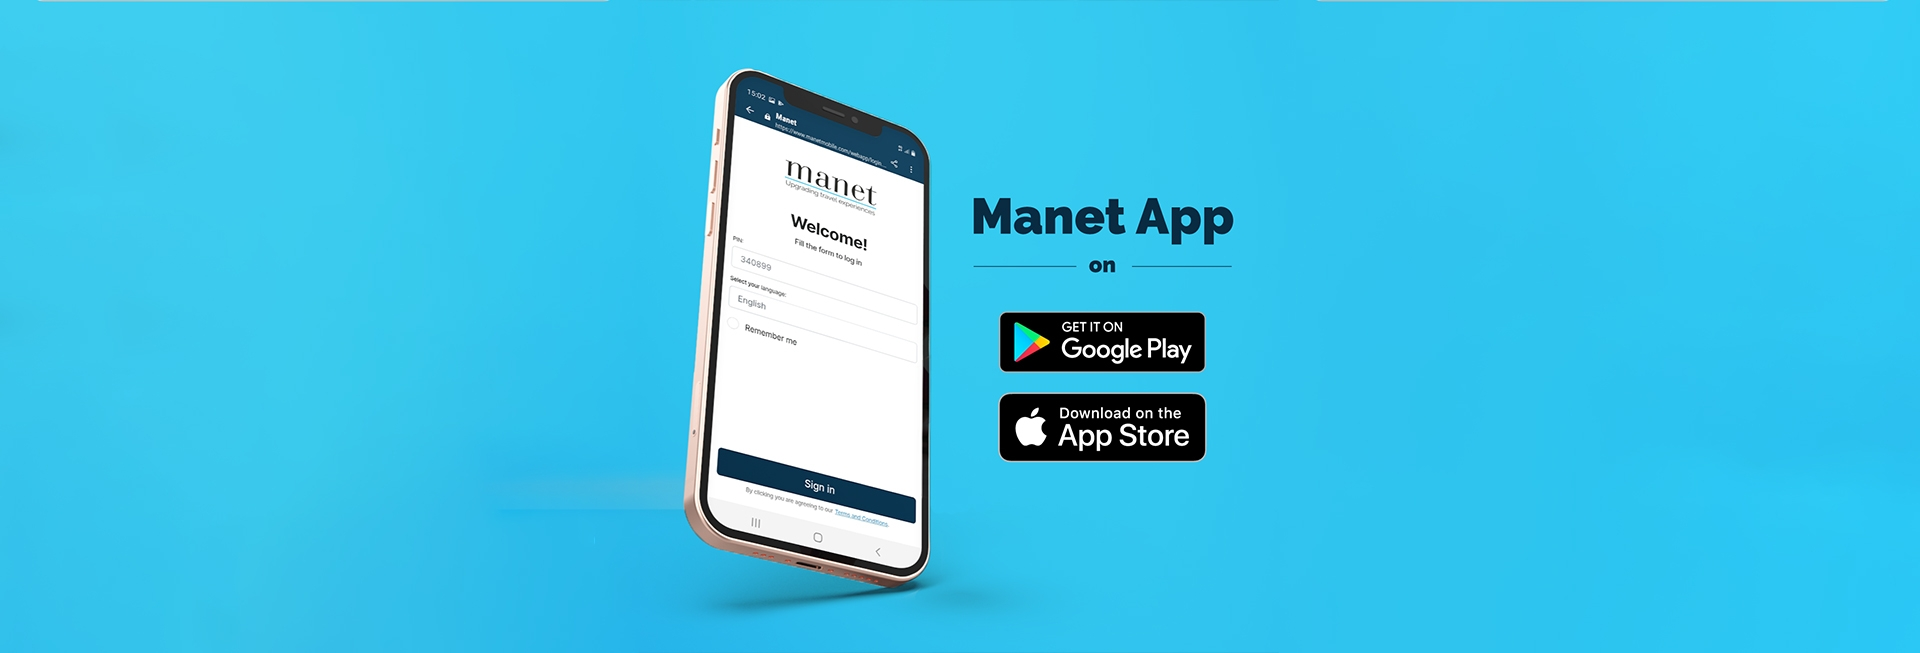 Manet is live on Google Play and App Store